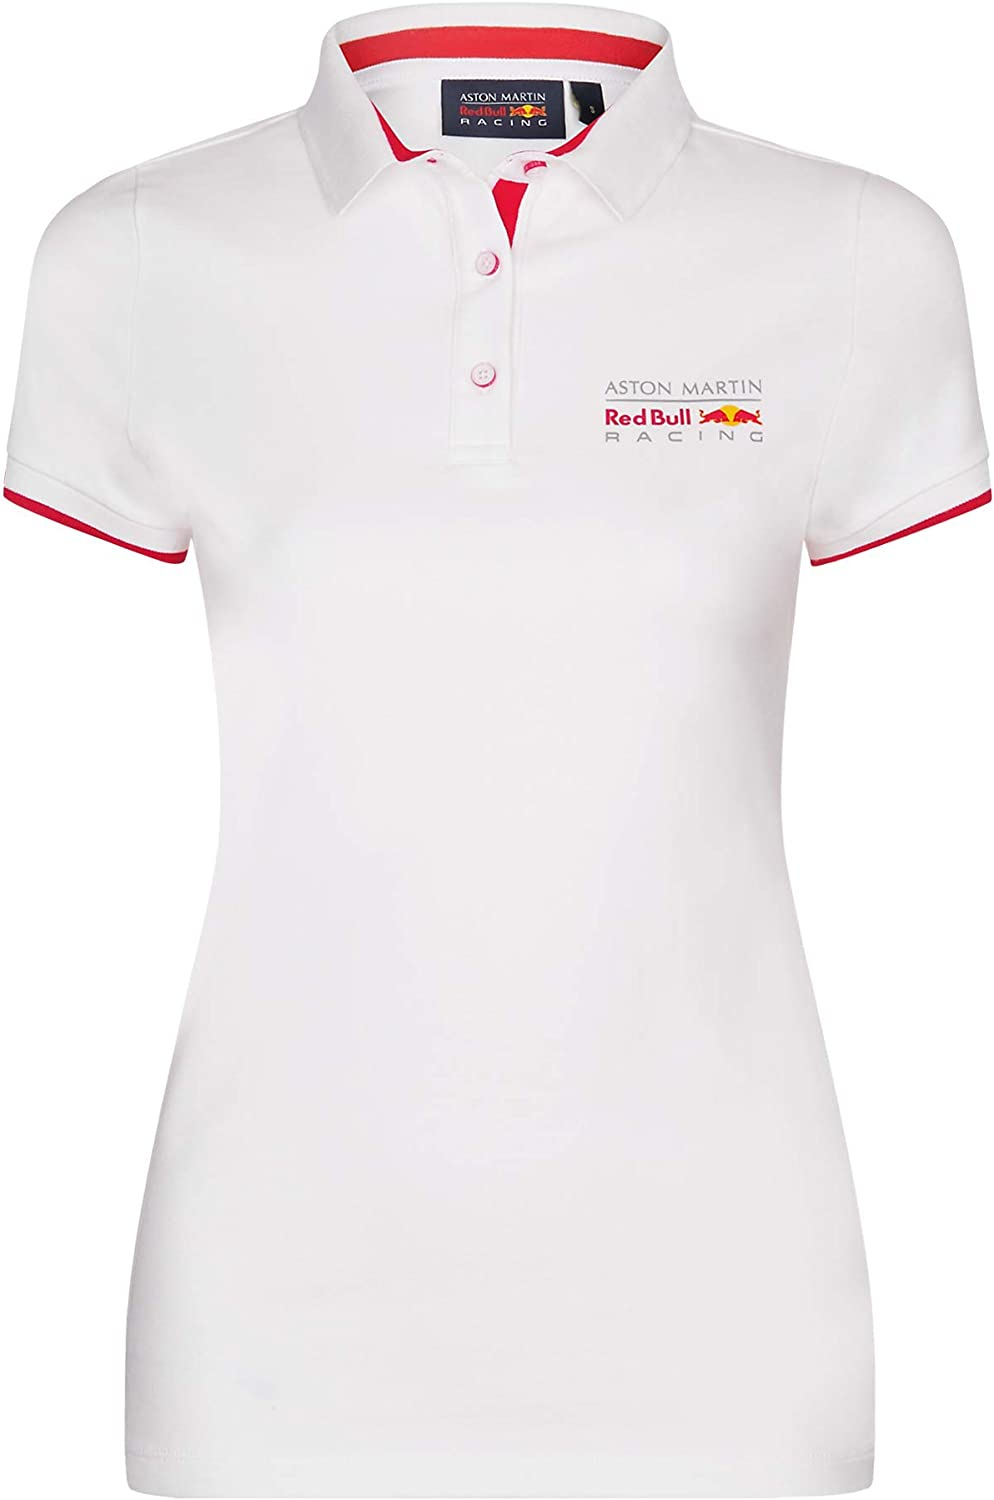 Red Bull Racing Classic Camisa Polo, Mujeres - Official Merchandise